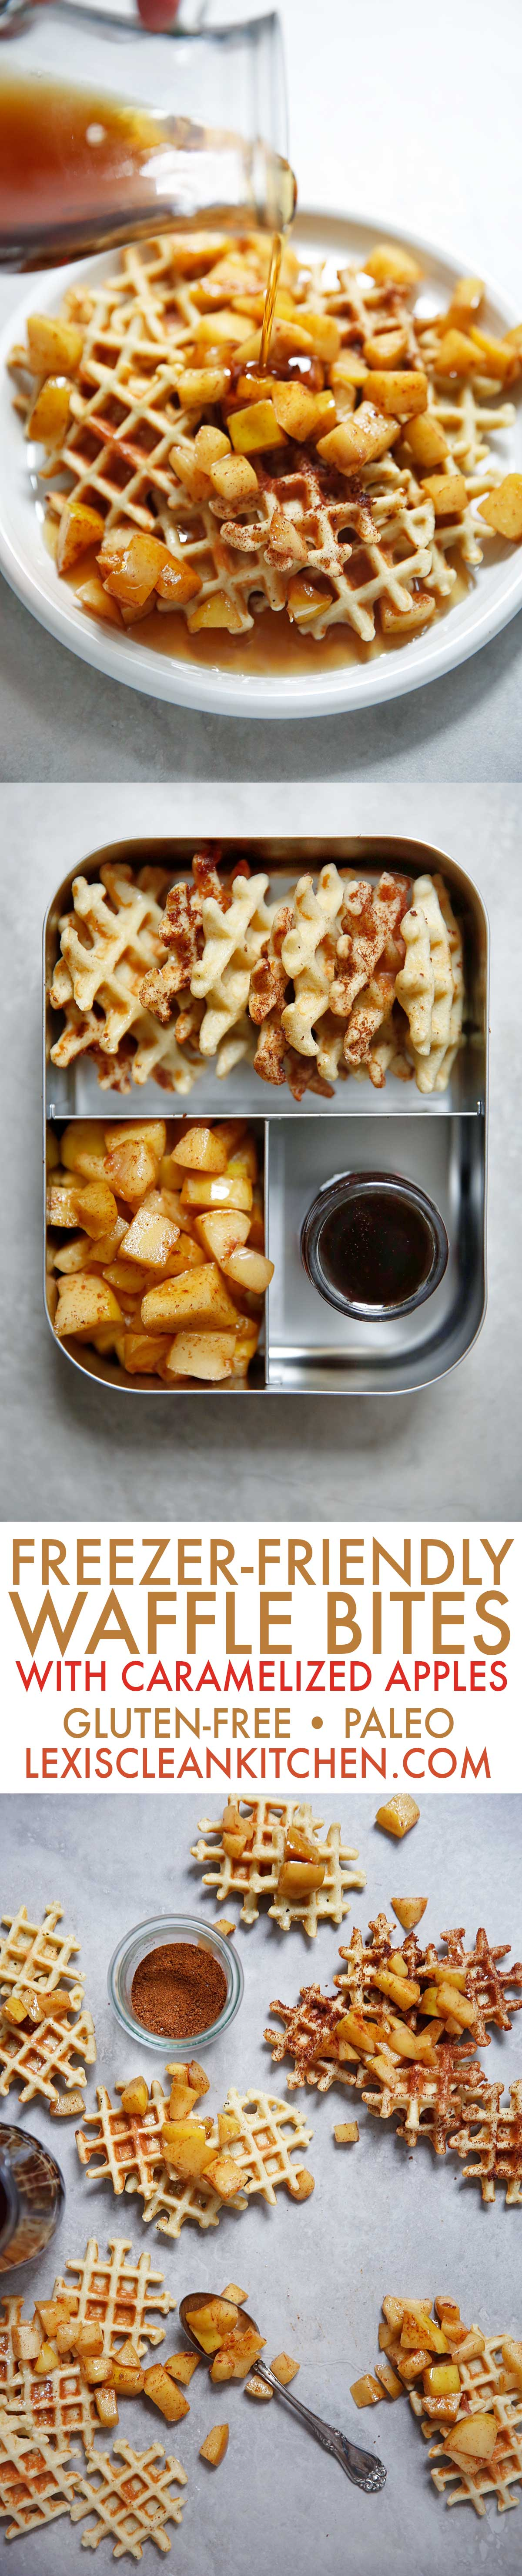 Freezer Friendly Waffle Bites Caramelized Apples [gluten-free, paleo-friendly, low-carb] | Lexi's Clean Kitchen